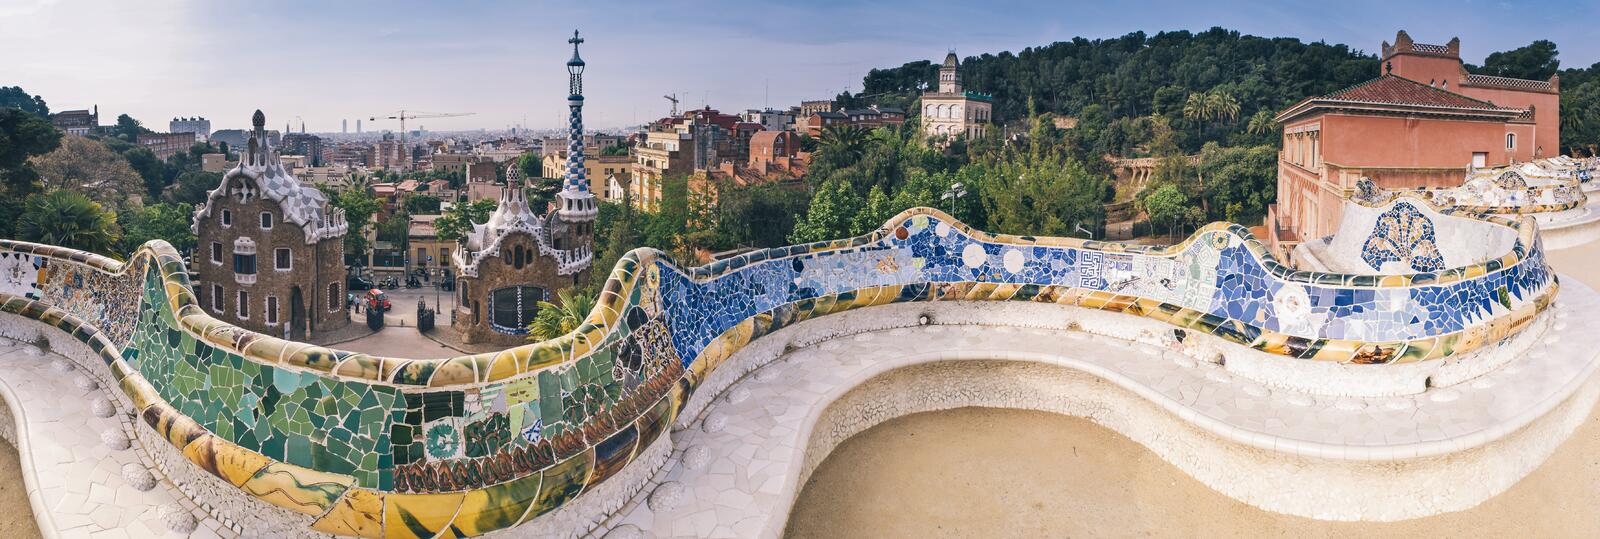 Parc Guell, Barcelone photo libre de droits